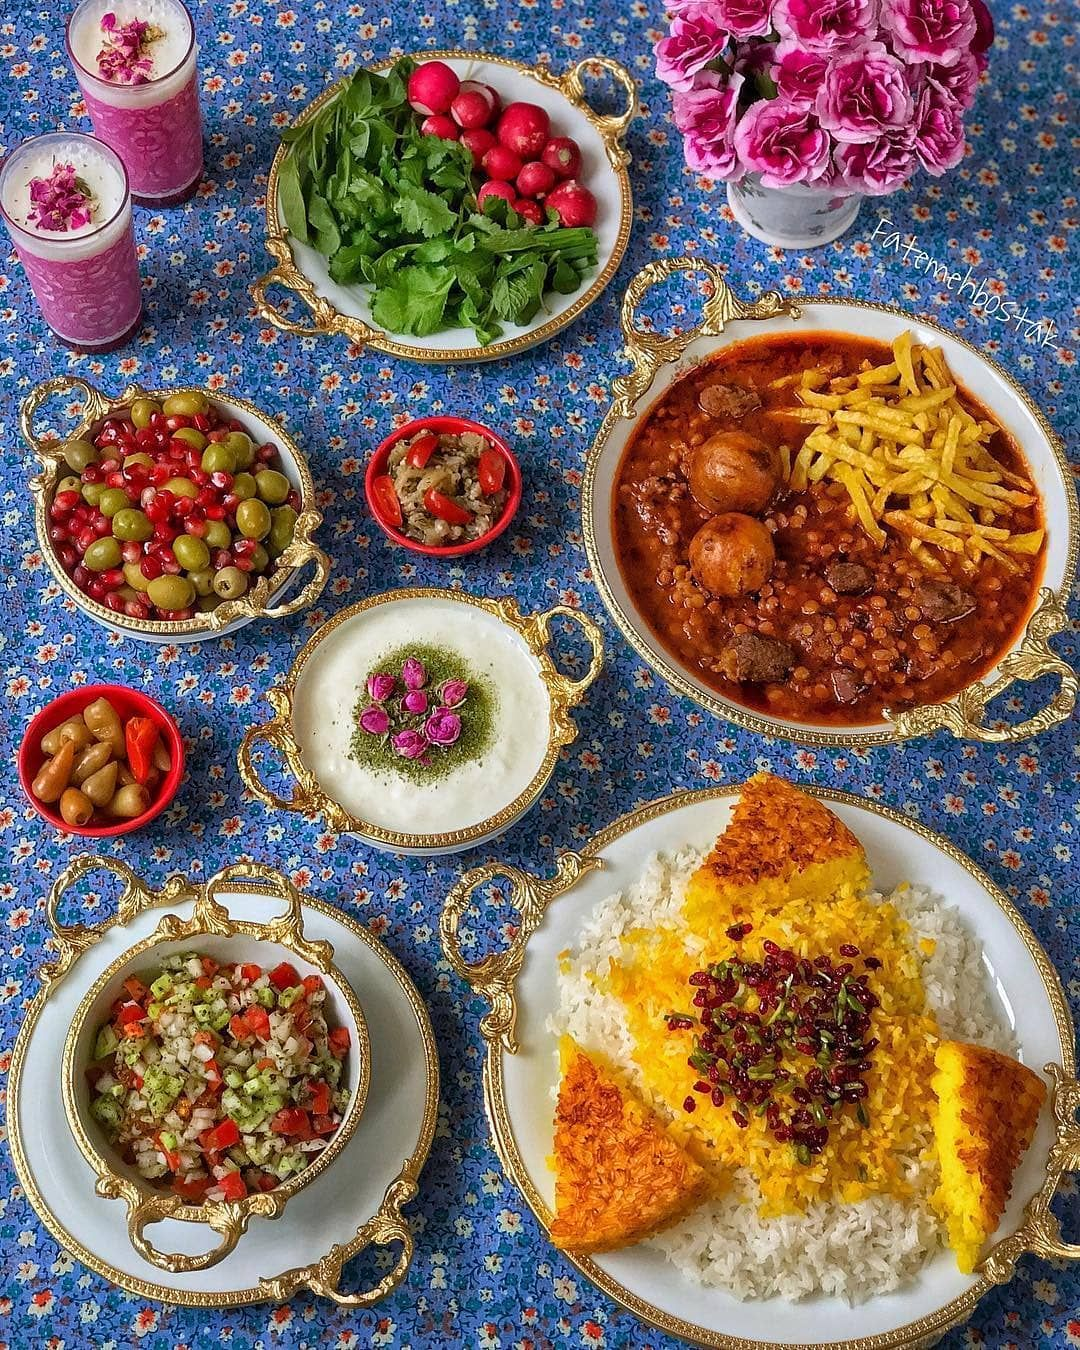 Tourism Iran Hd Pictures On Instagram It S Time For Another Iranian Dish Yummy Capture Of Persian Food Iranian Cuisine Iranian Dishes Iranian Cuisine